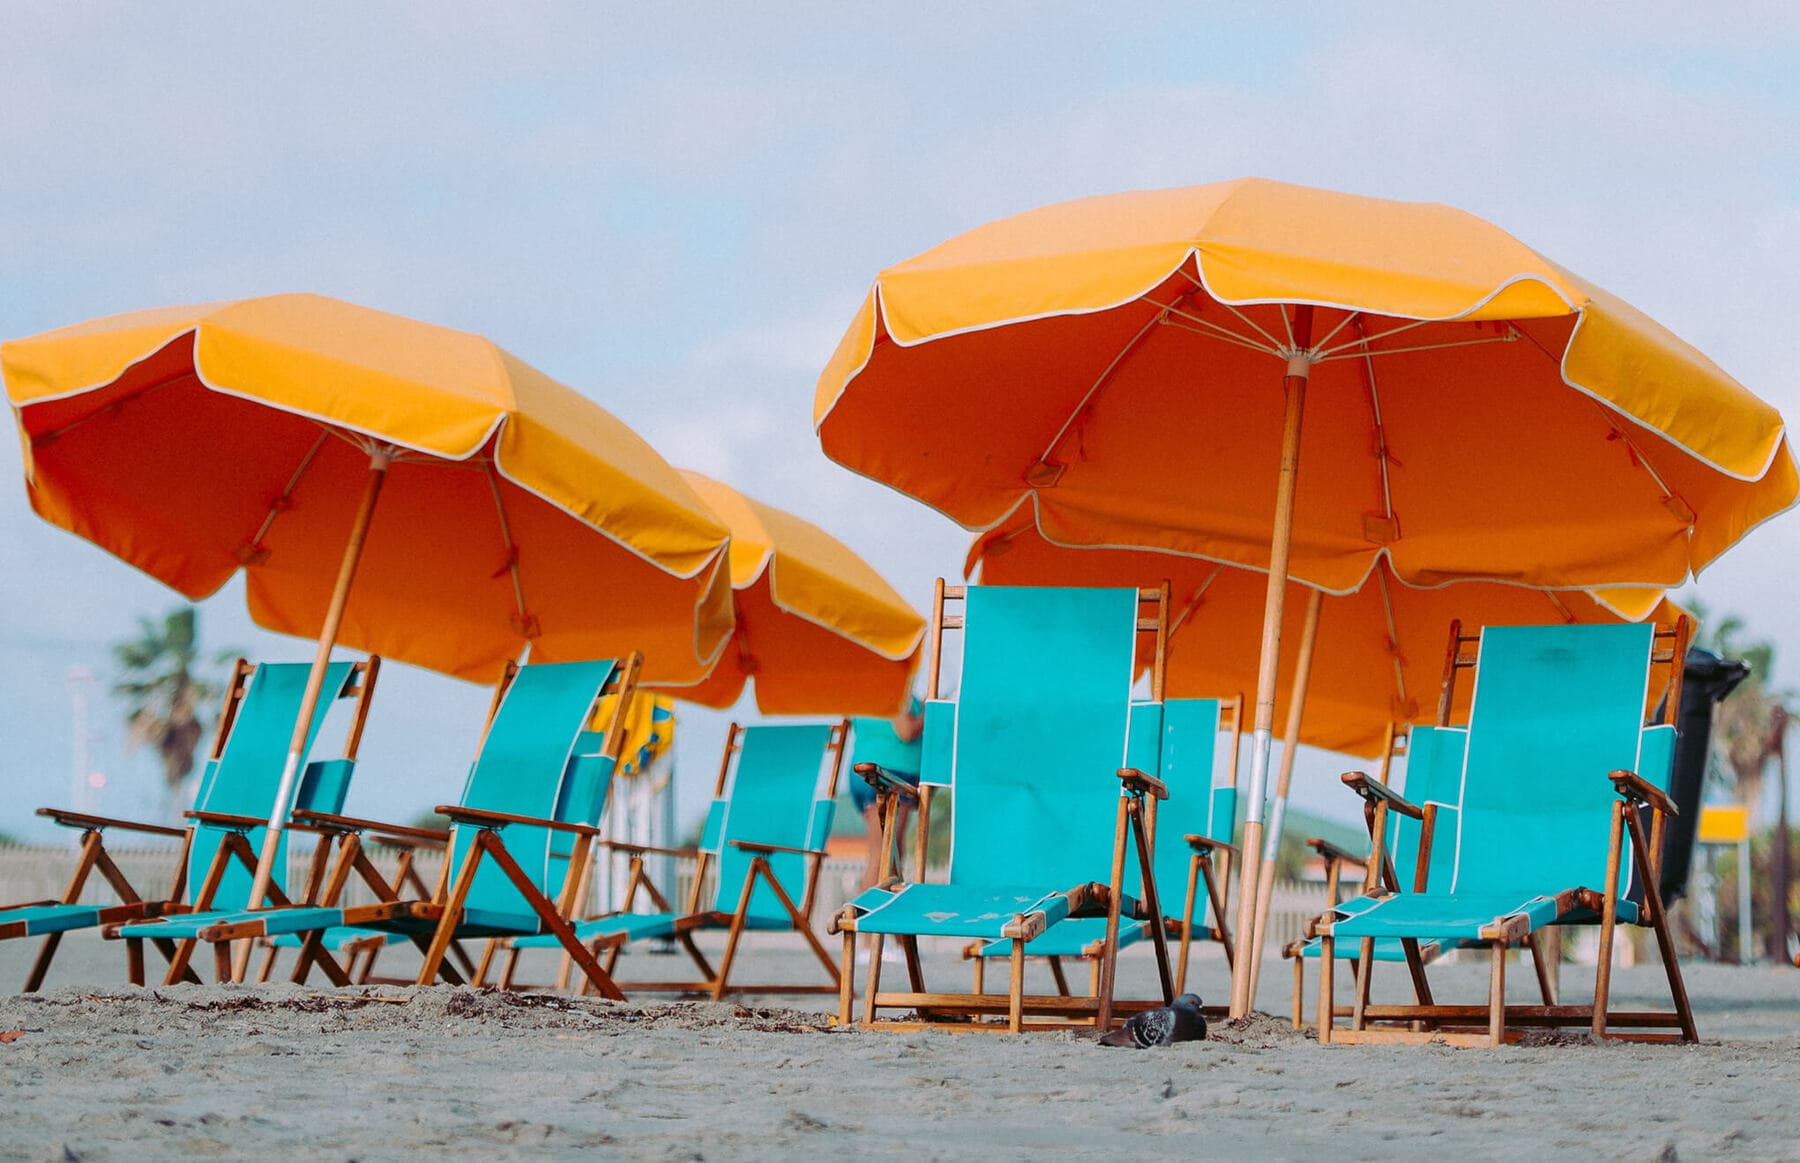 Green Beach Chairs on the Sand with Orange Umbrellas